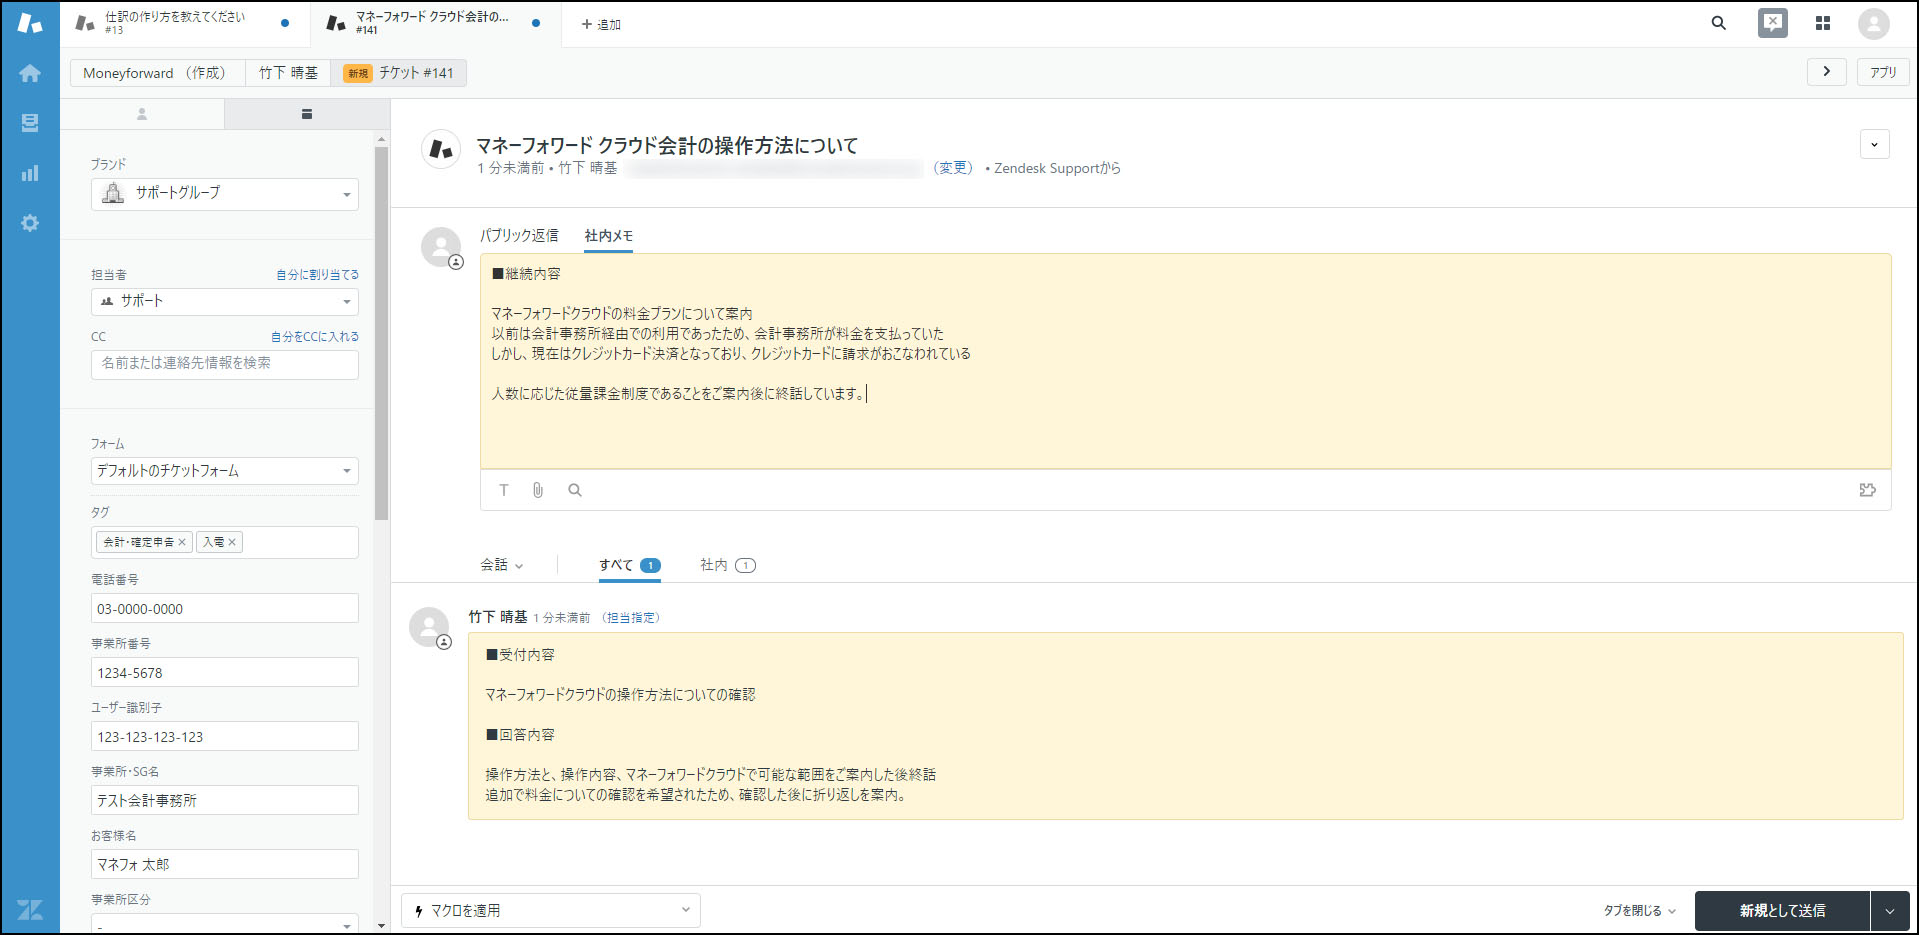 Zendesk Support管理画面